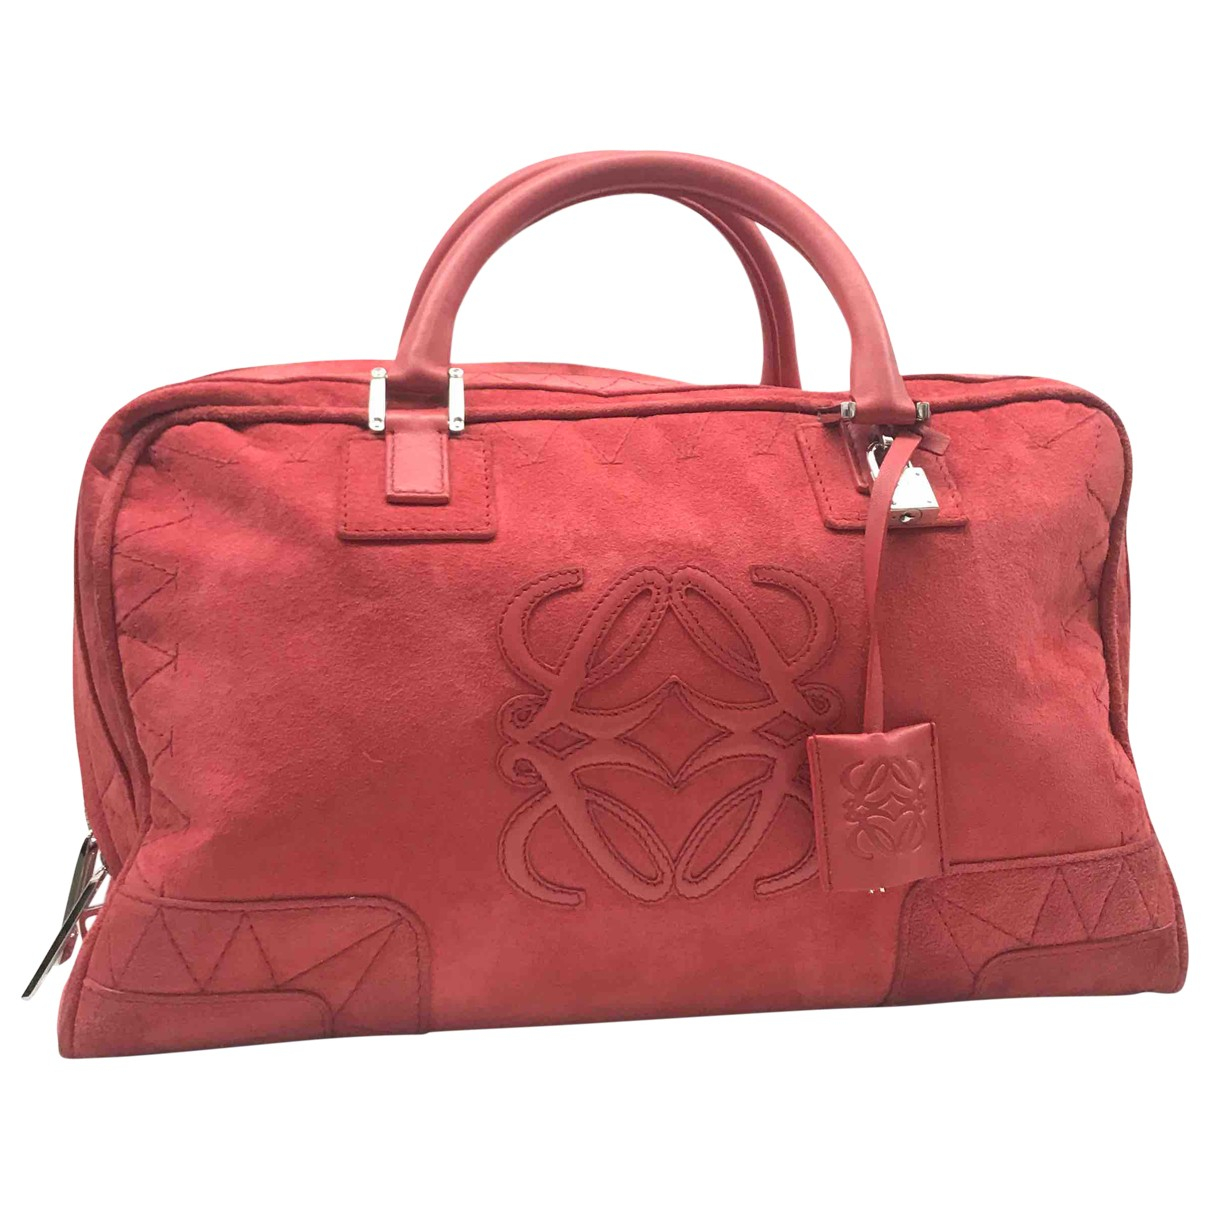 Loewe Amazona Red Suede handbag for Women N